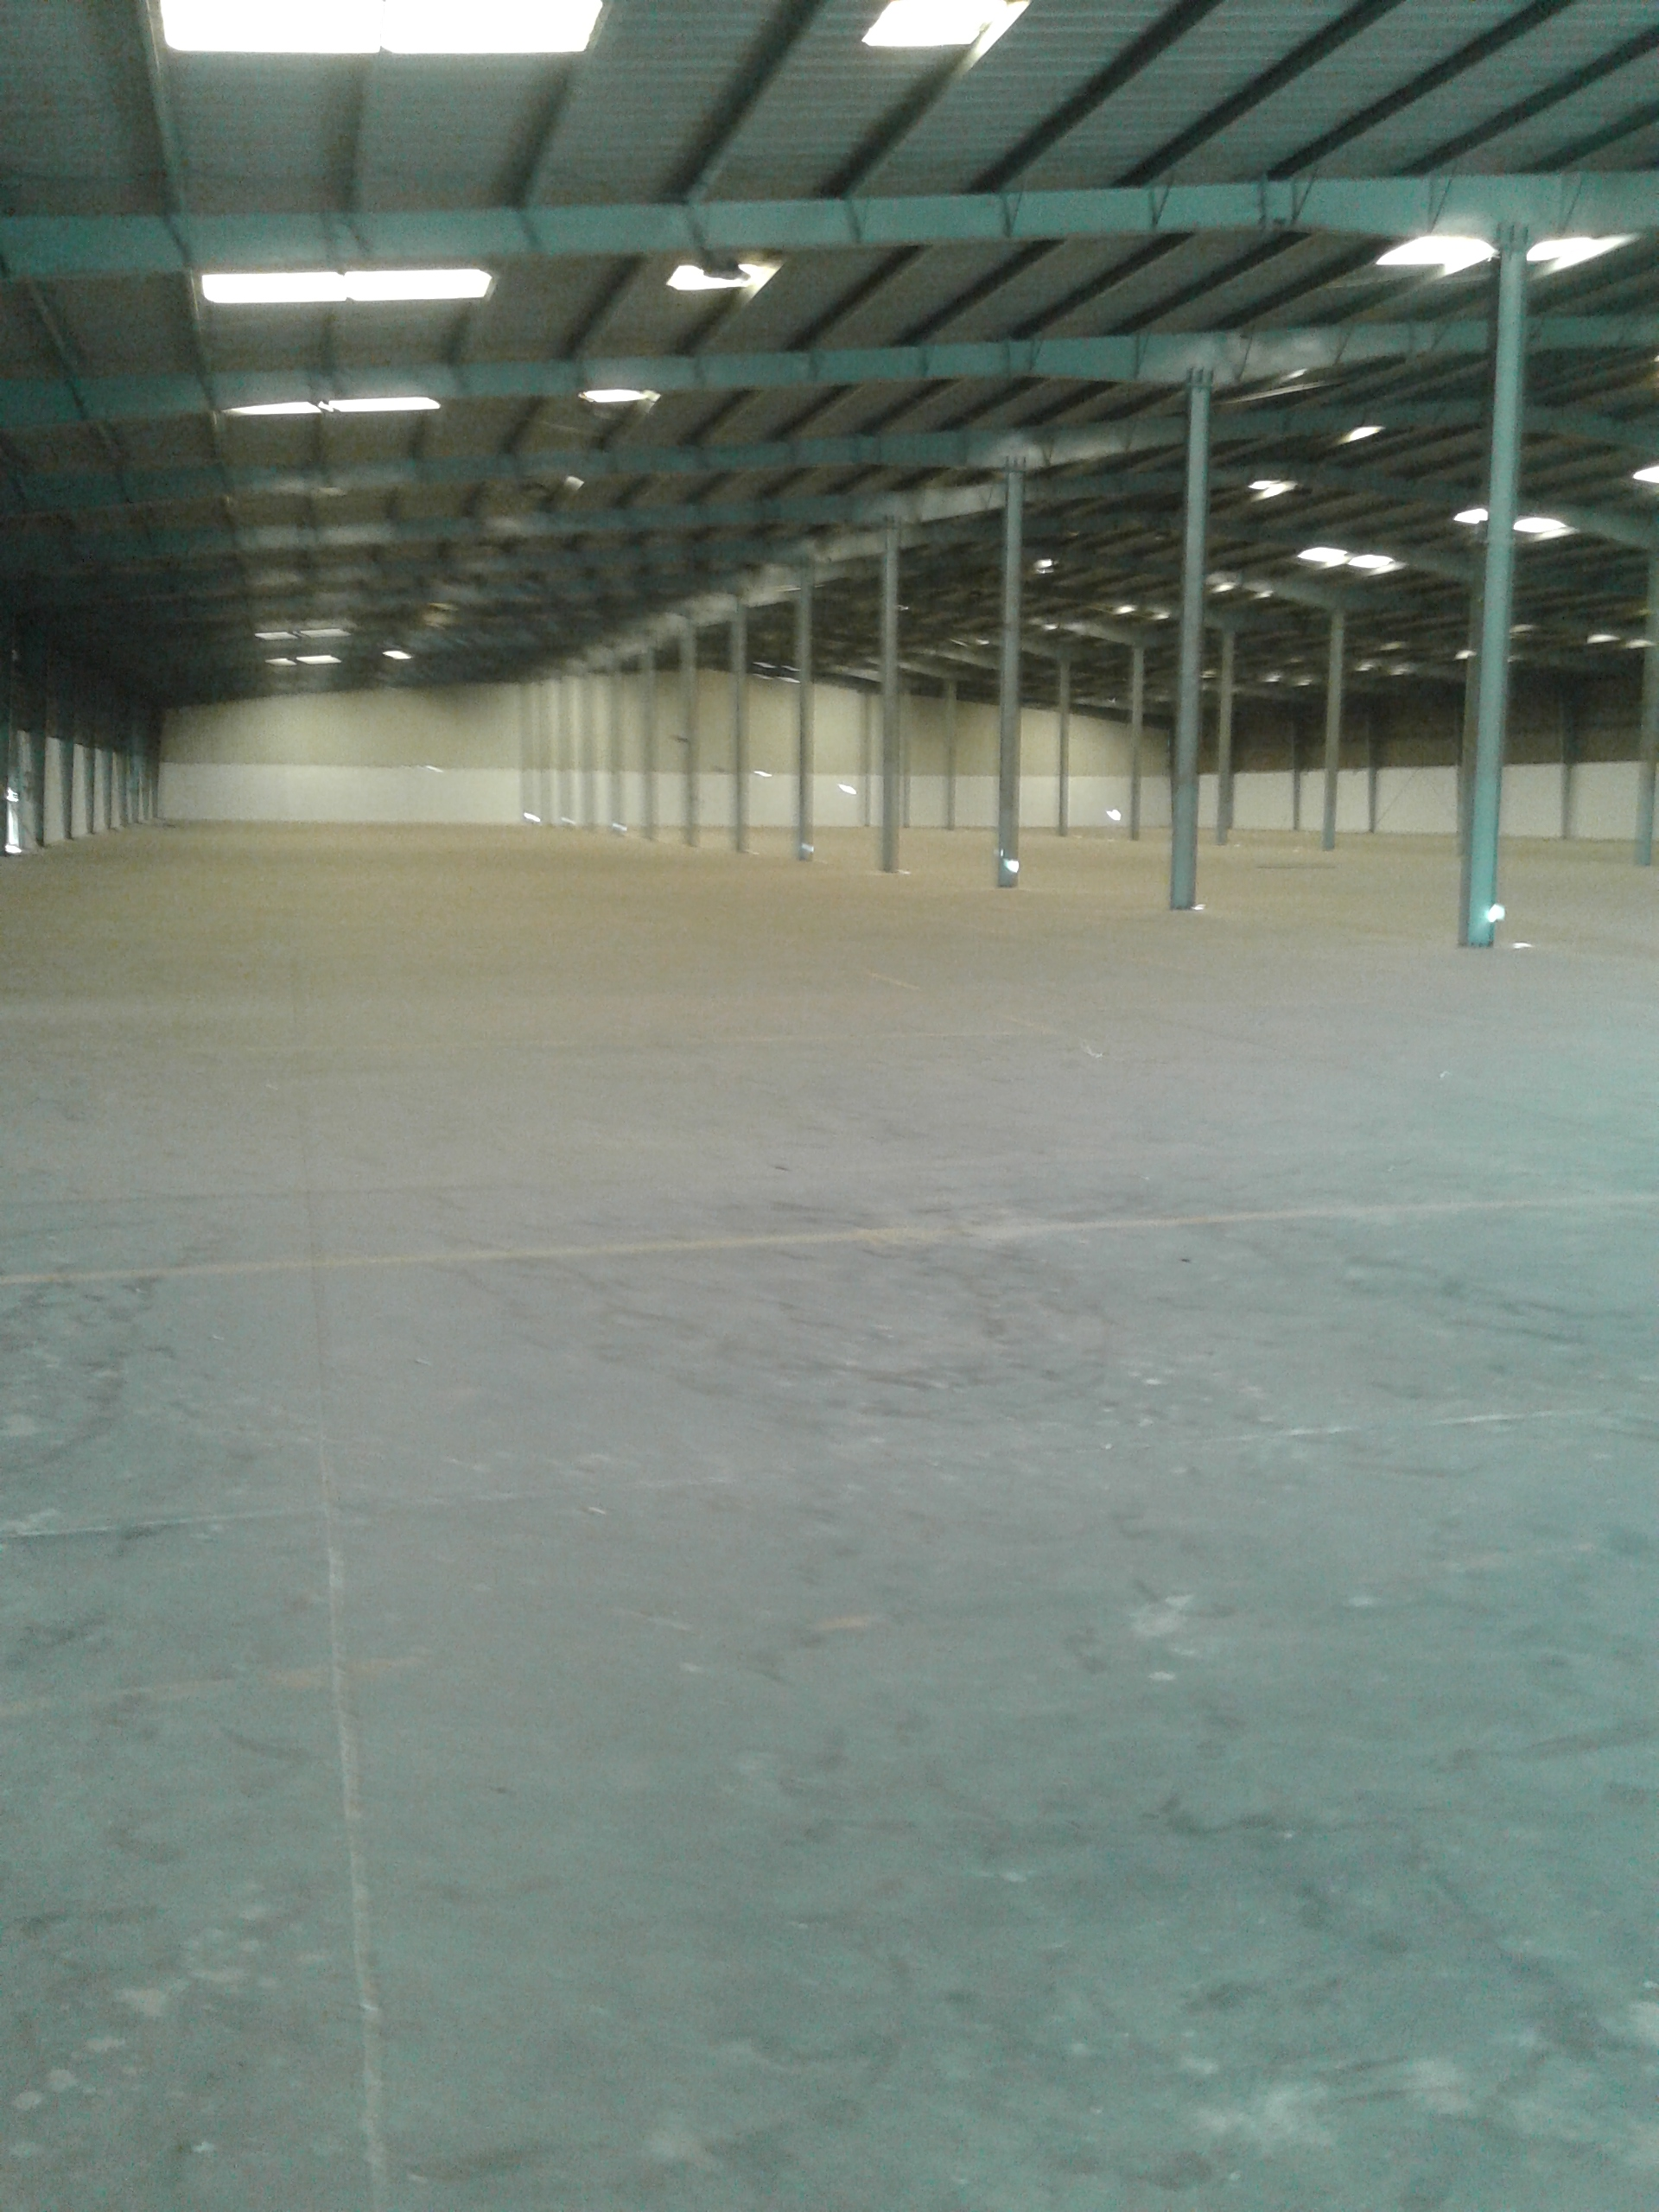 FOR RENT | LEASE 200000 SQ.FT  WAREHOUSE IN VITTHALAPUR , MEHSANA – 9825249510